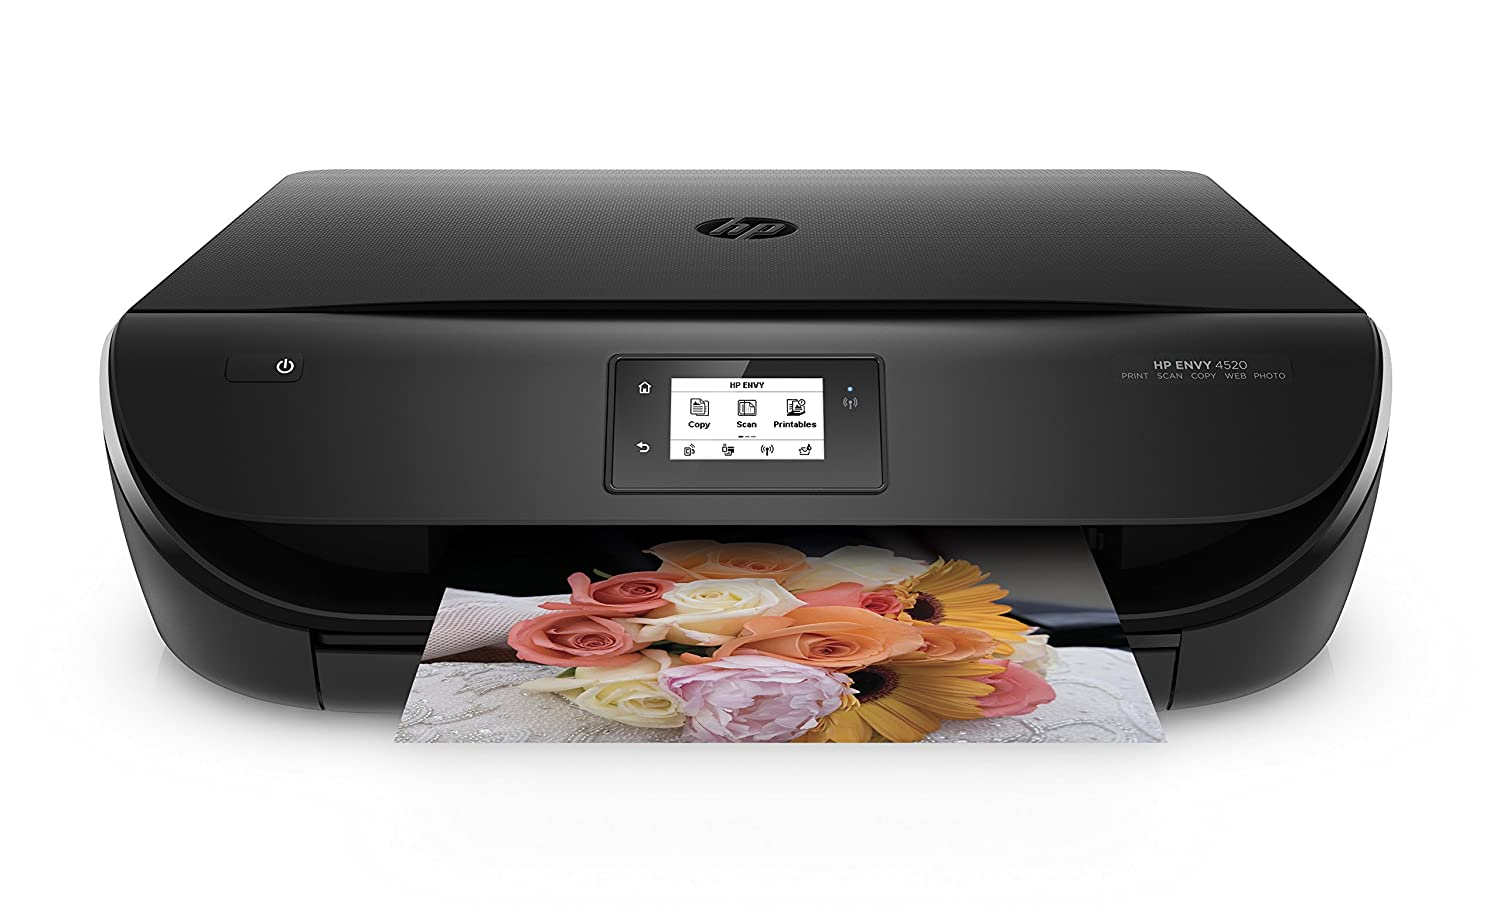 HP Envy 4520 Printer Black Friday Deal 2021